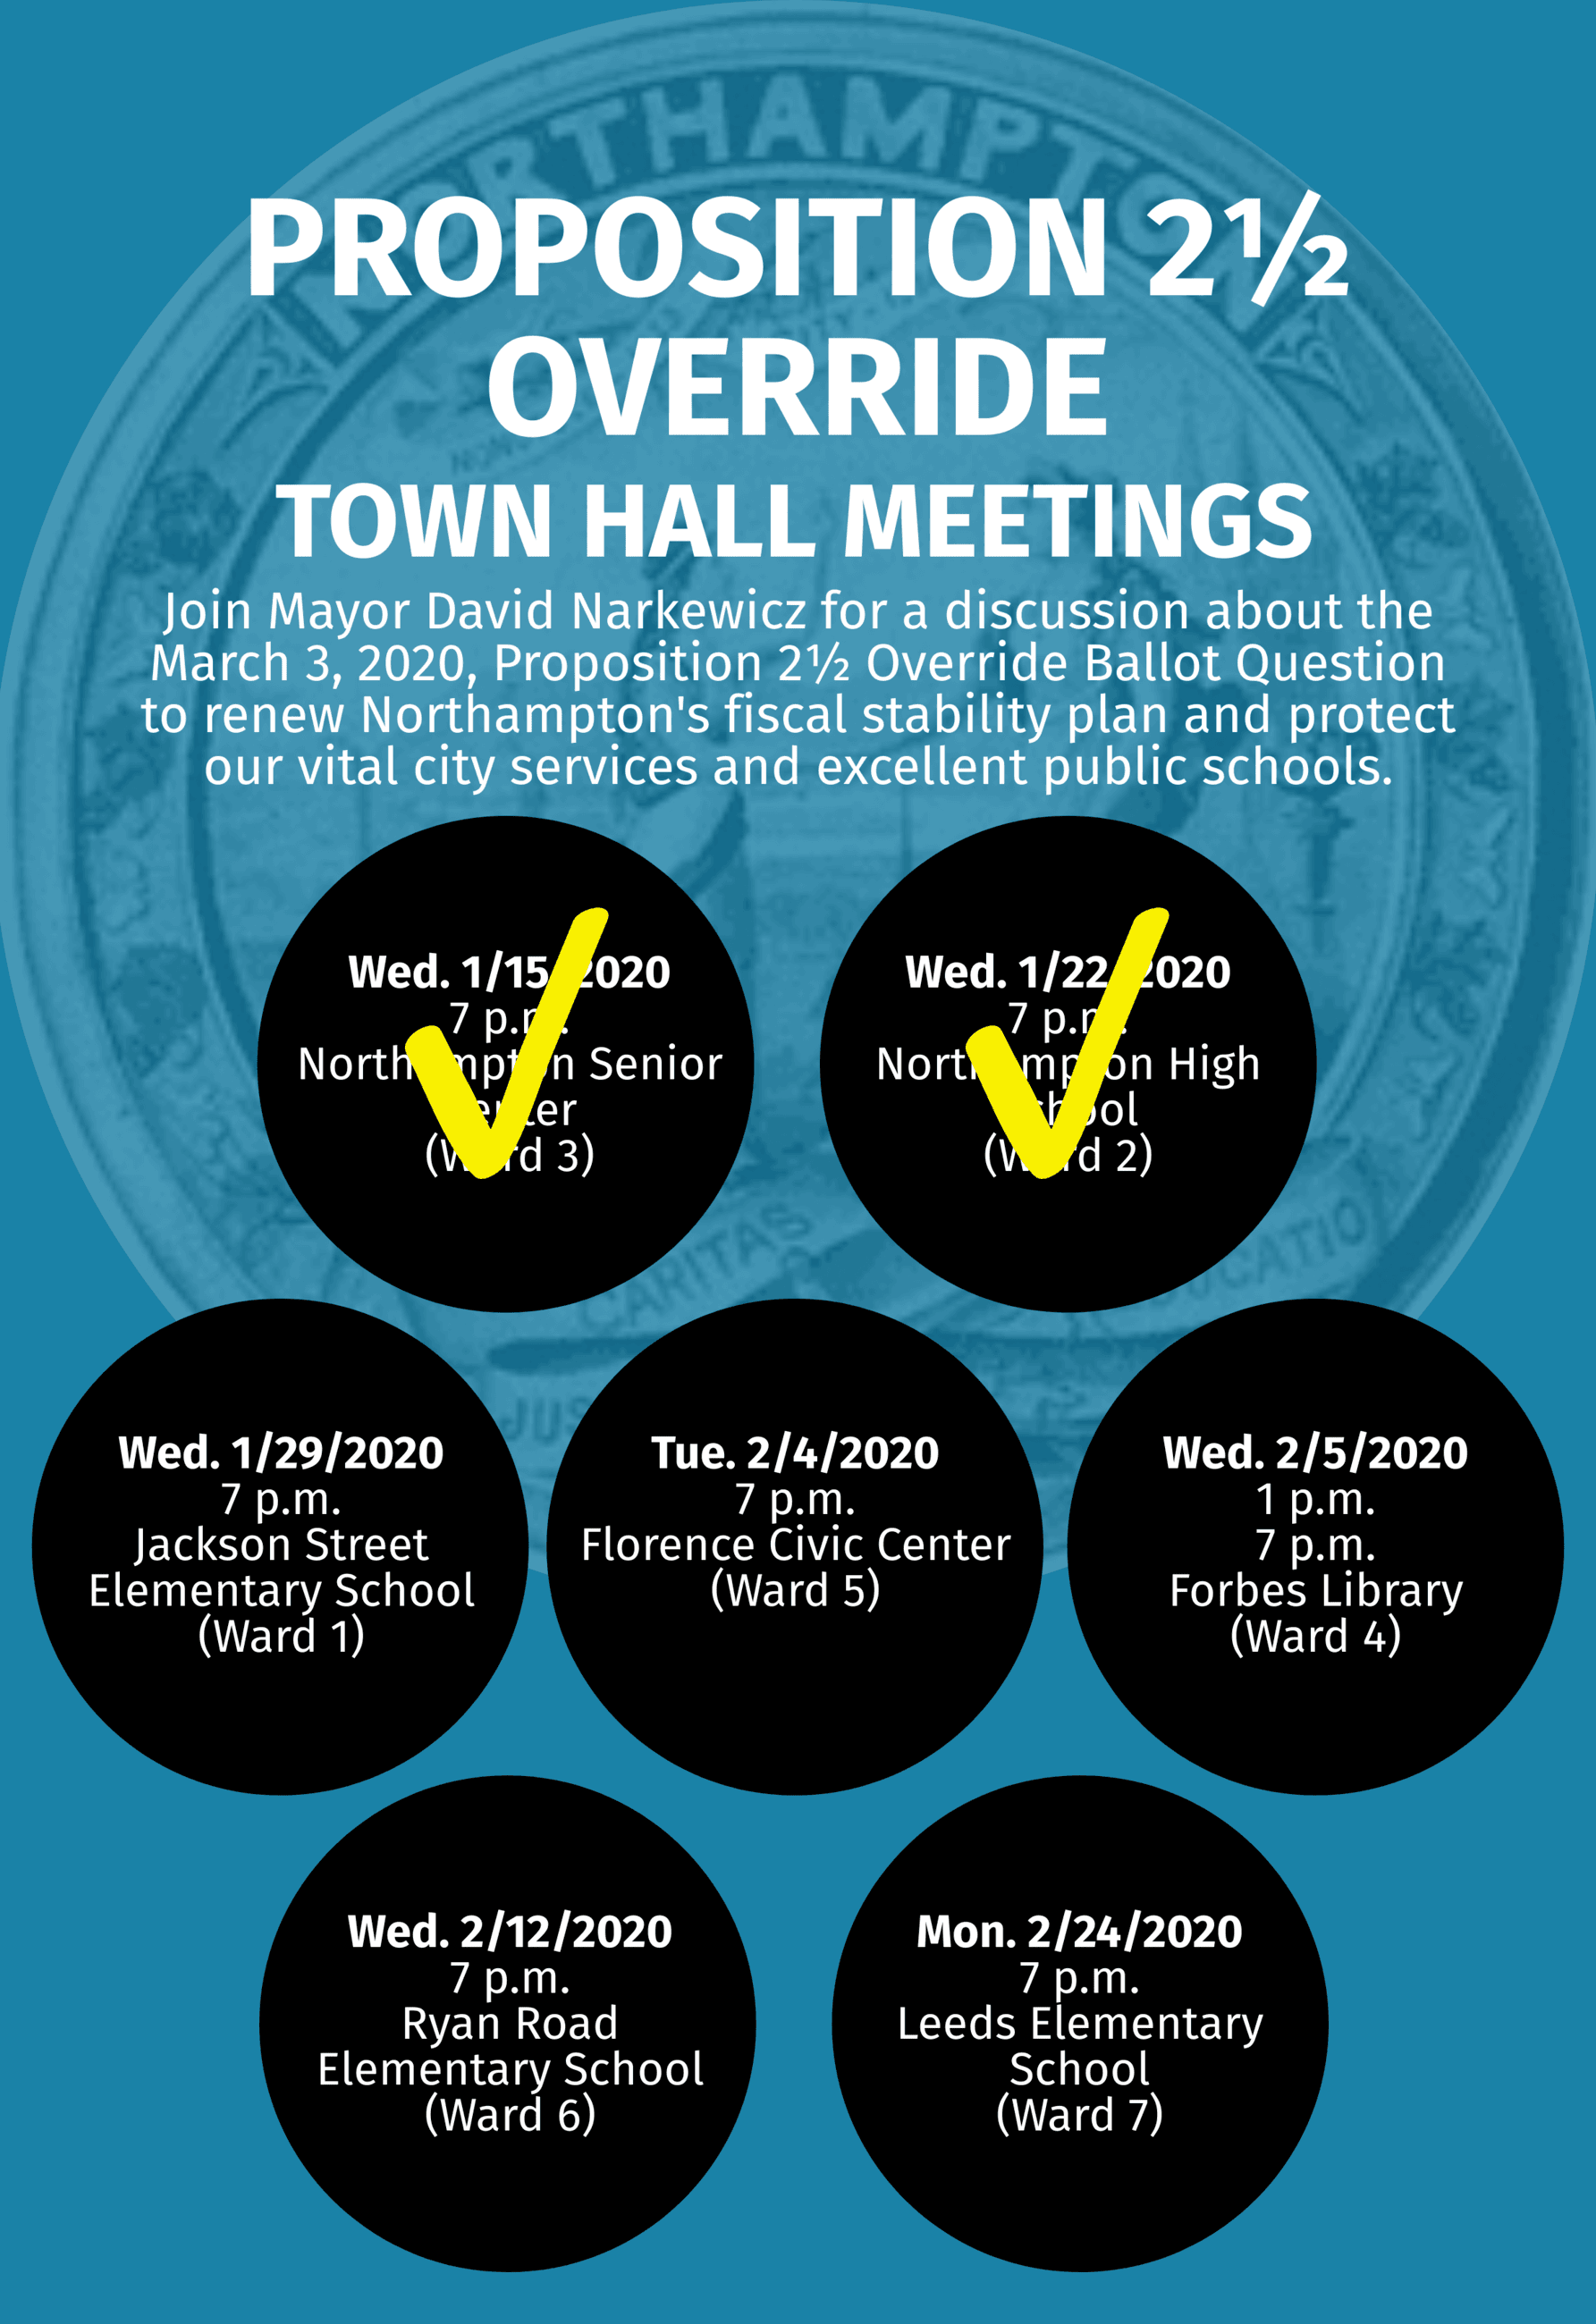 Image of Prop 2.5 Override Town Hall Meetings Flyer